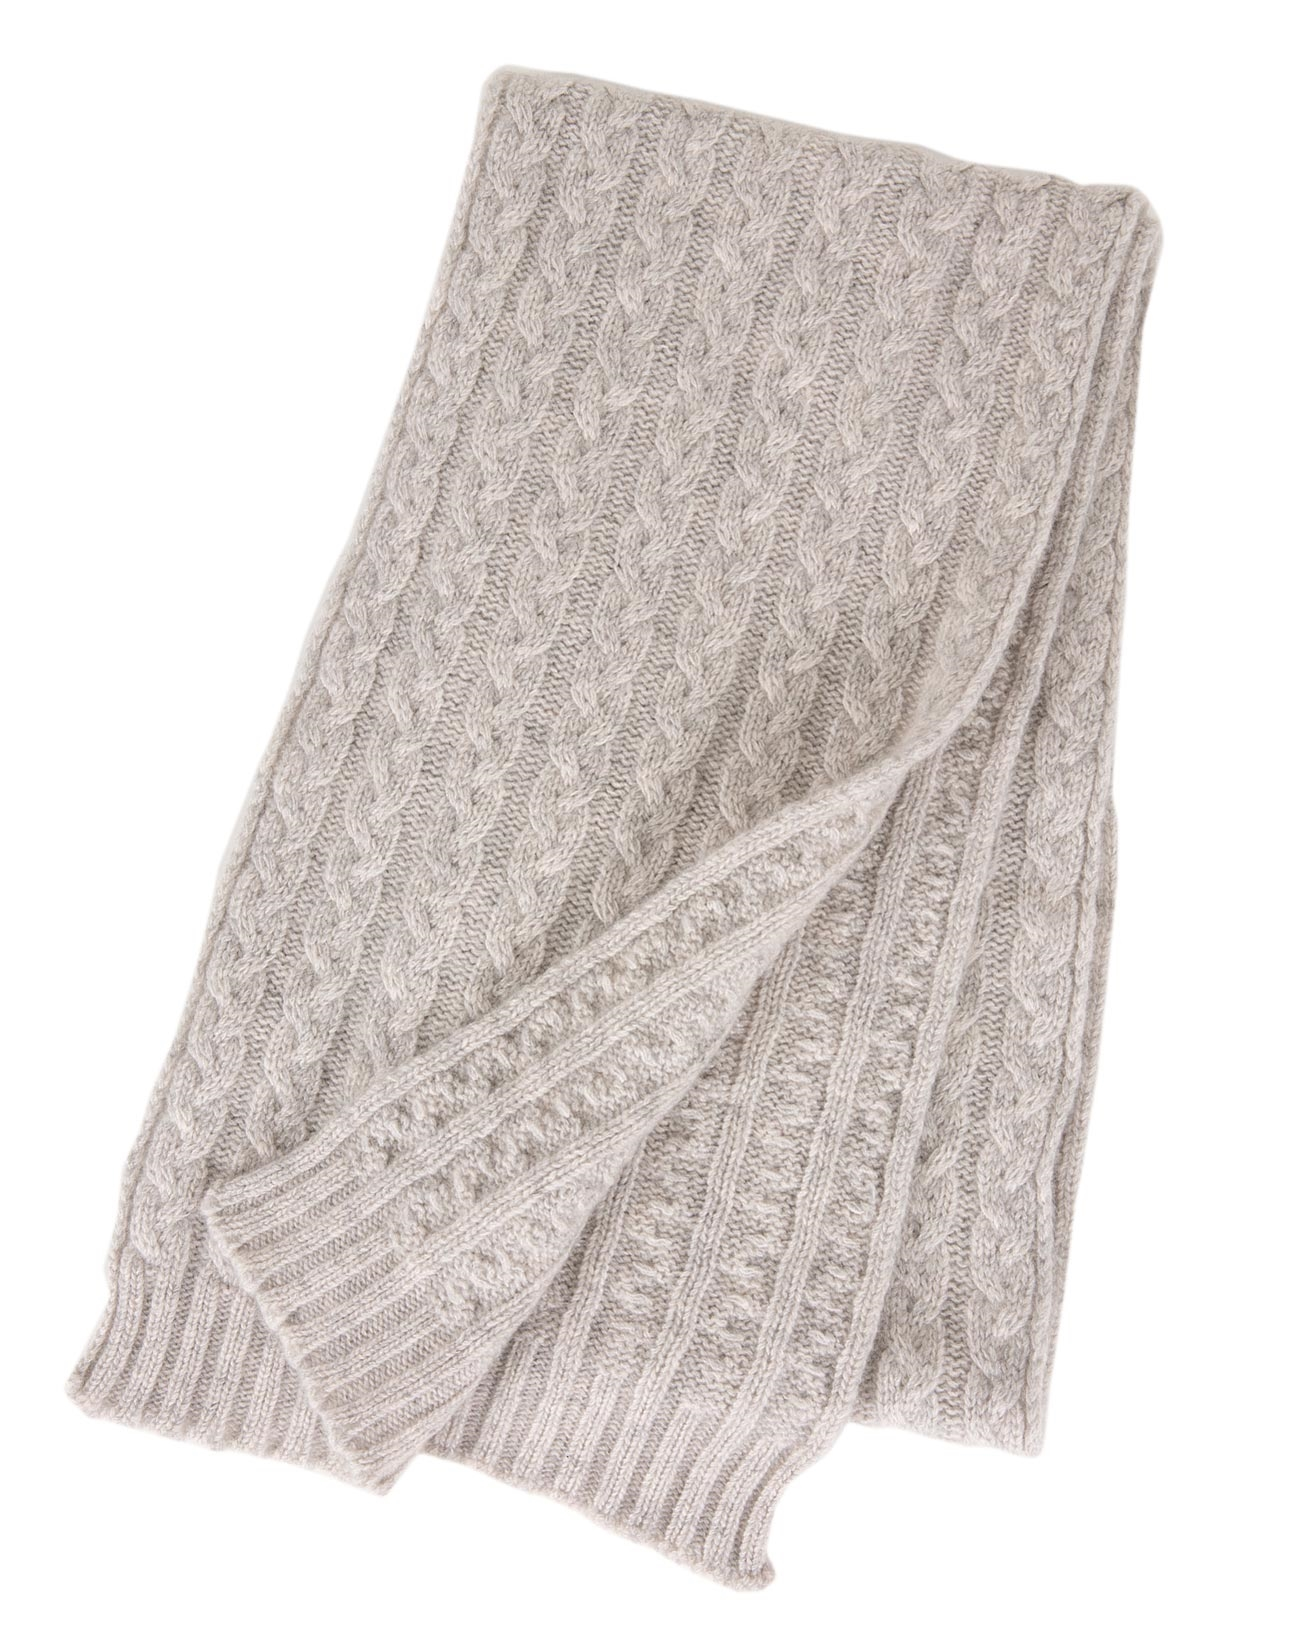 7529-statement scarf-dove grey scarf.jpg